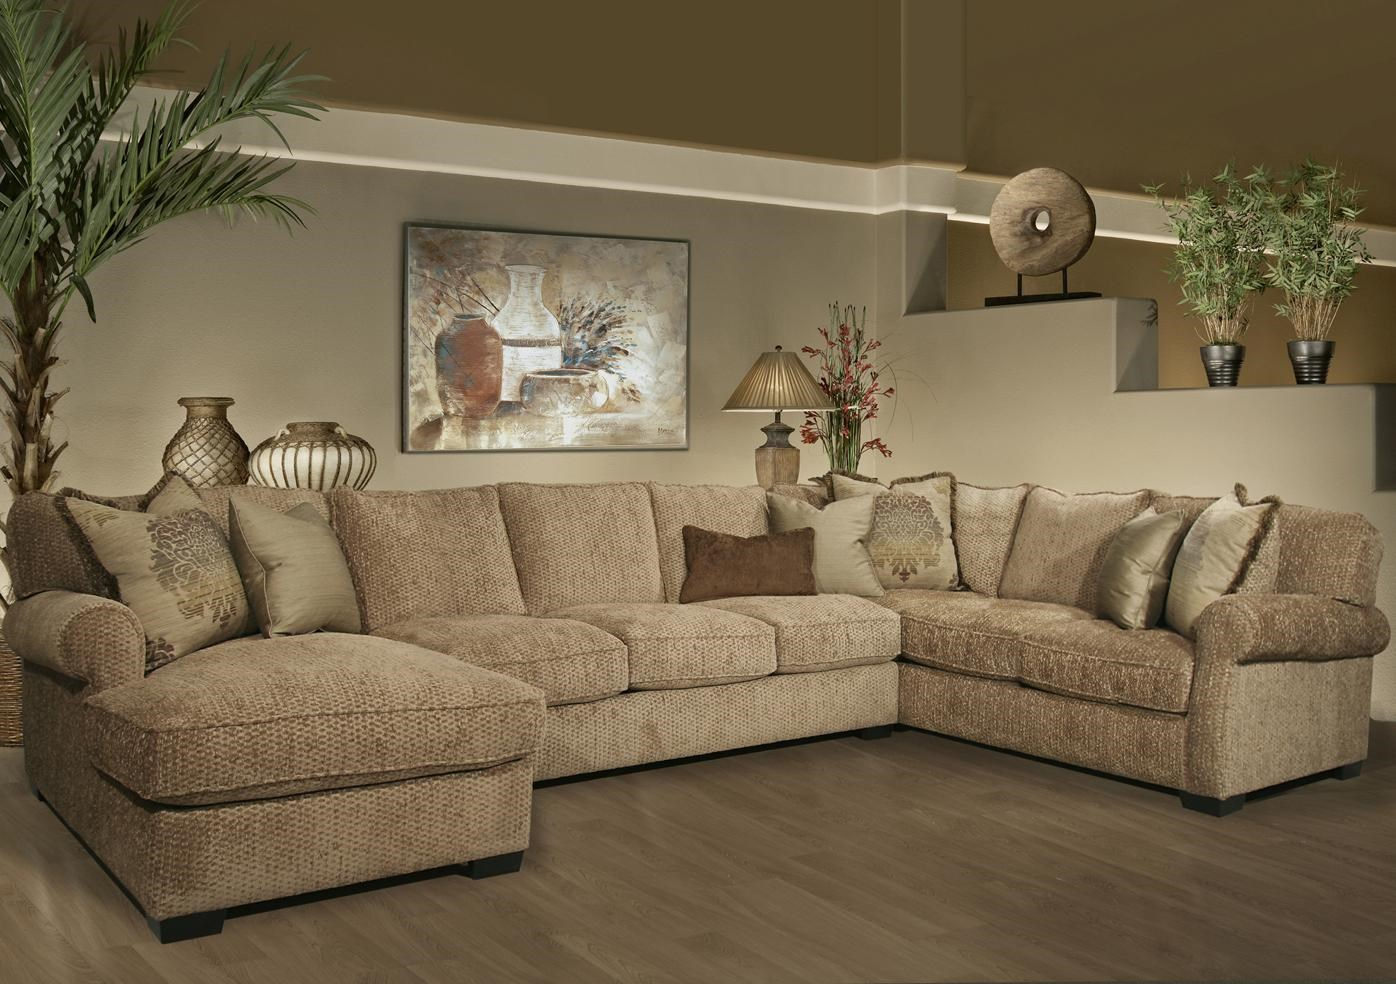 Superieur Fairmont Designs Rio Grande3 Piece Sectional